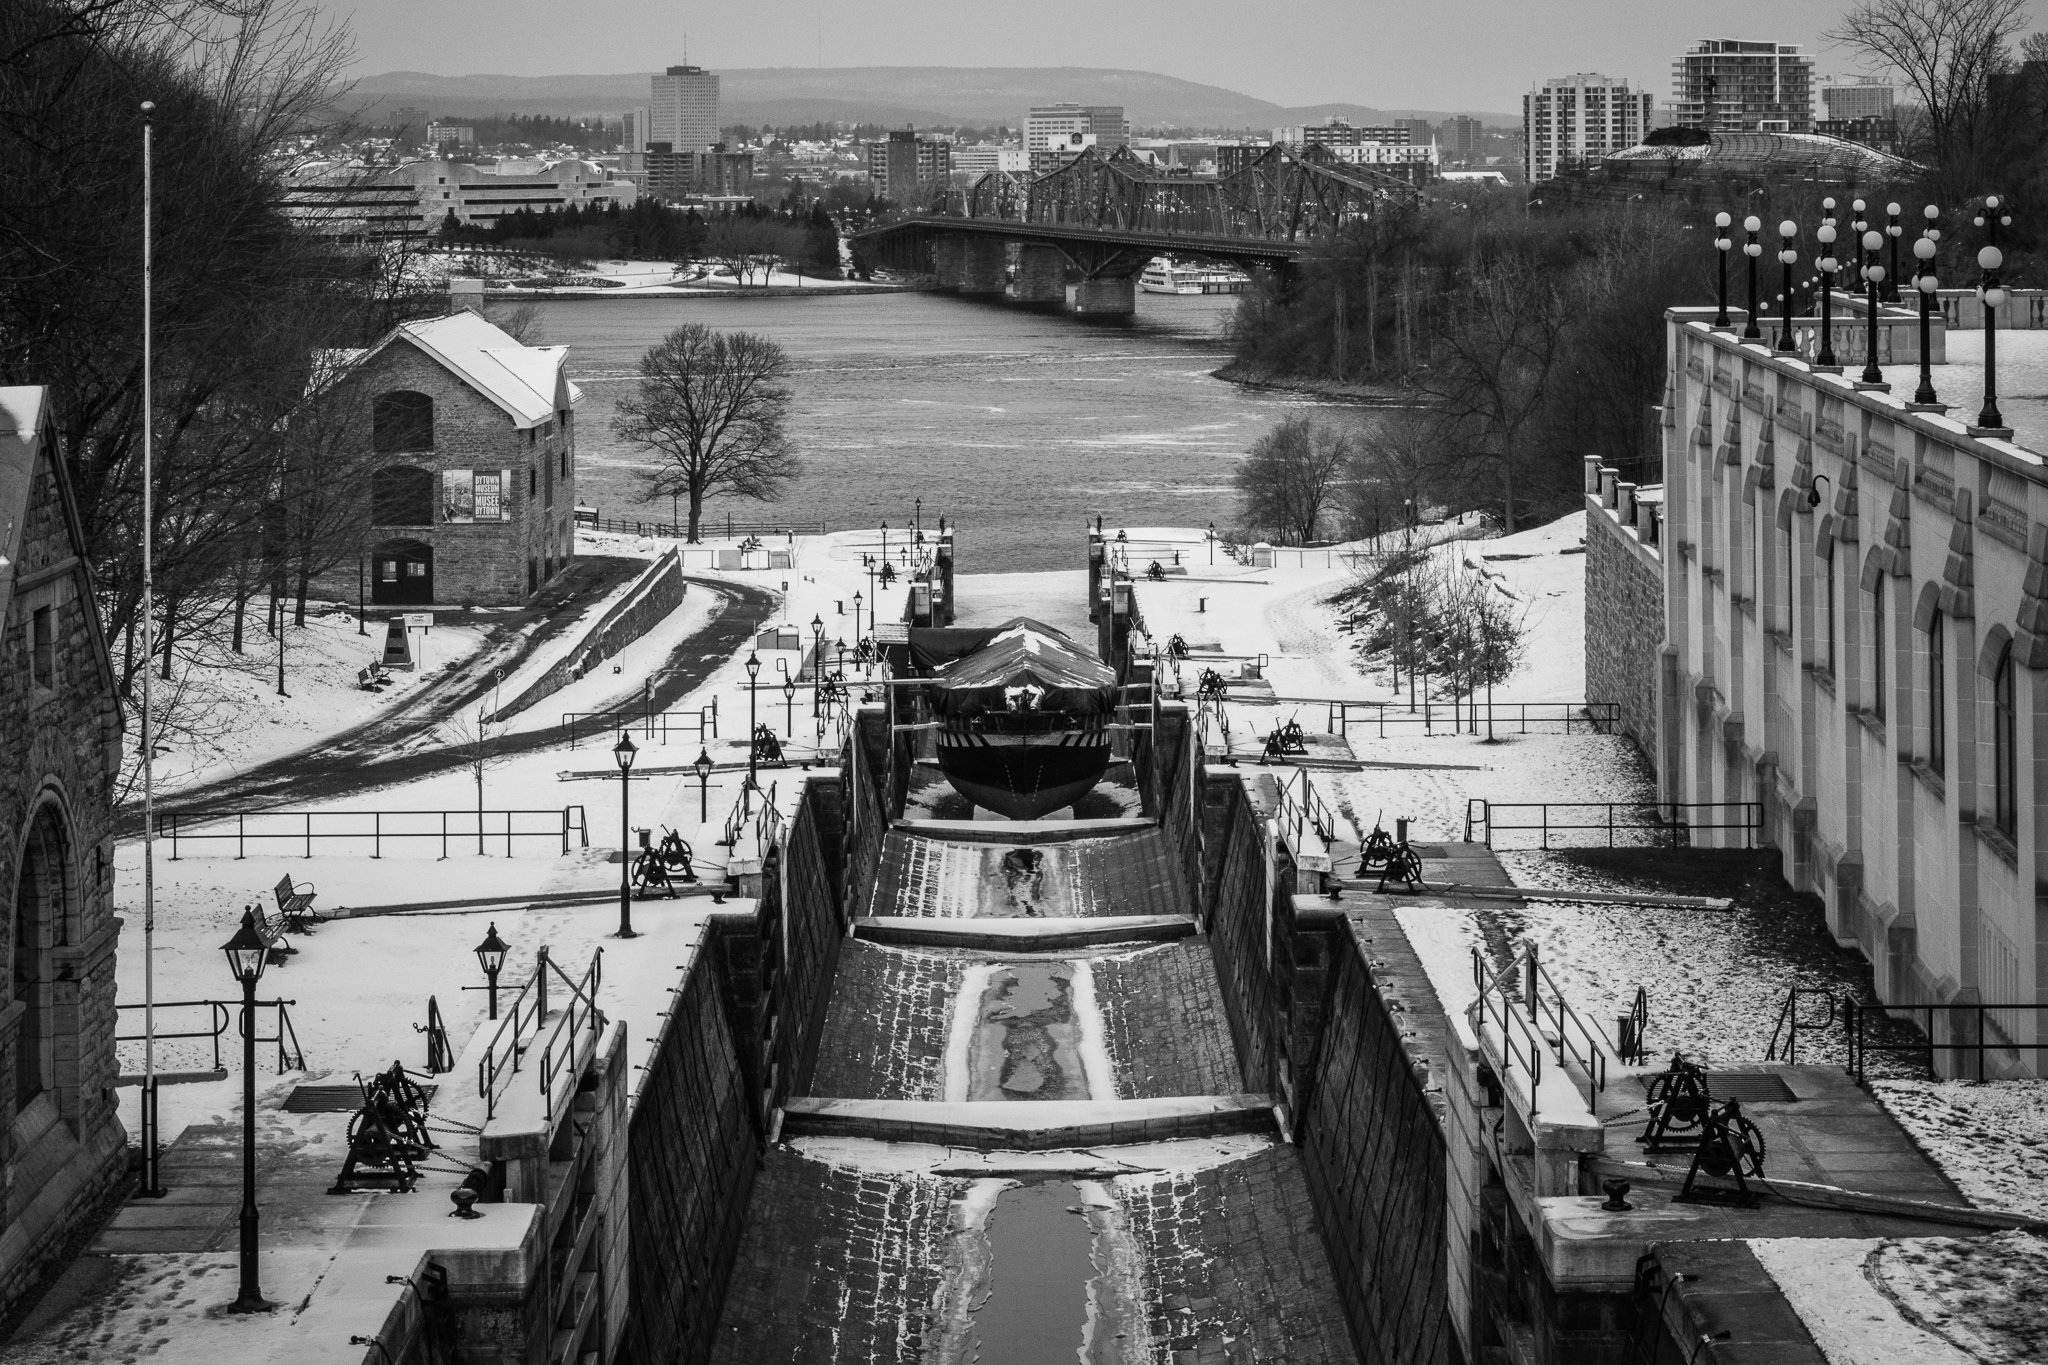 Rideau Canal (1/200s, f/13, ISO400)